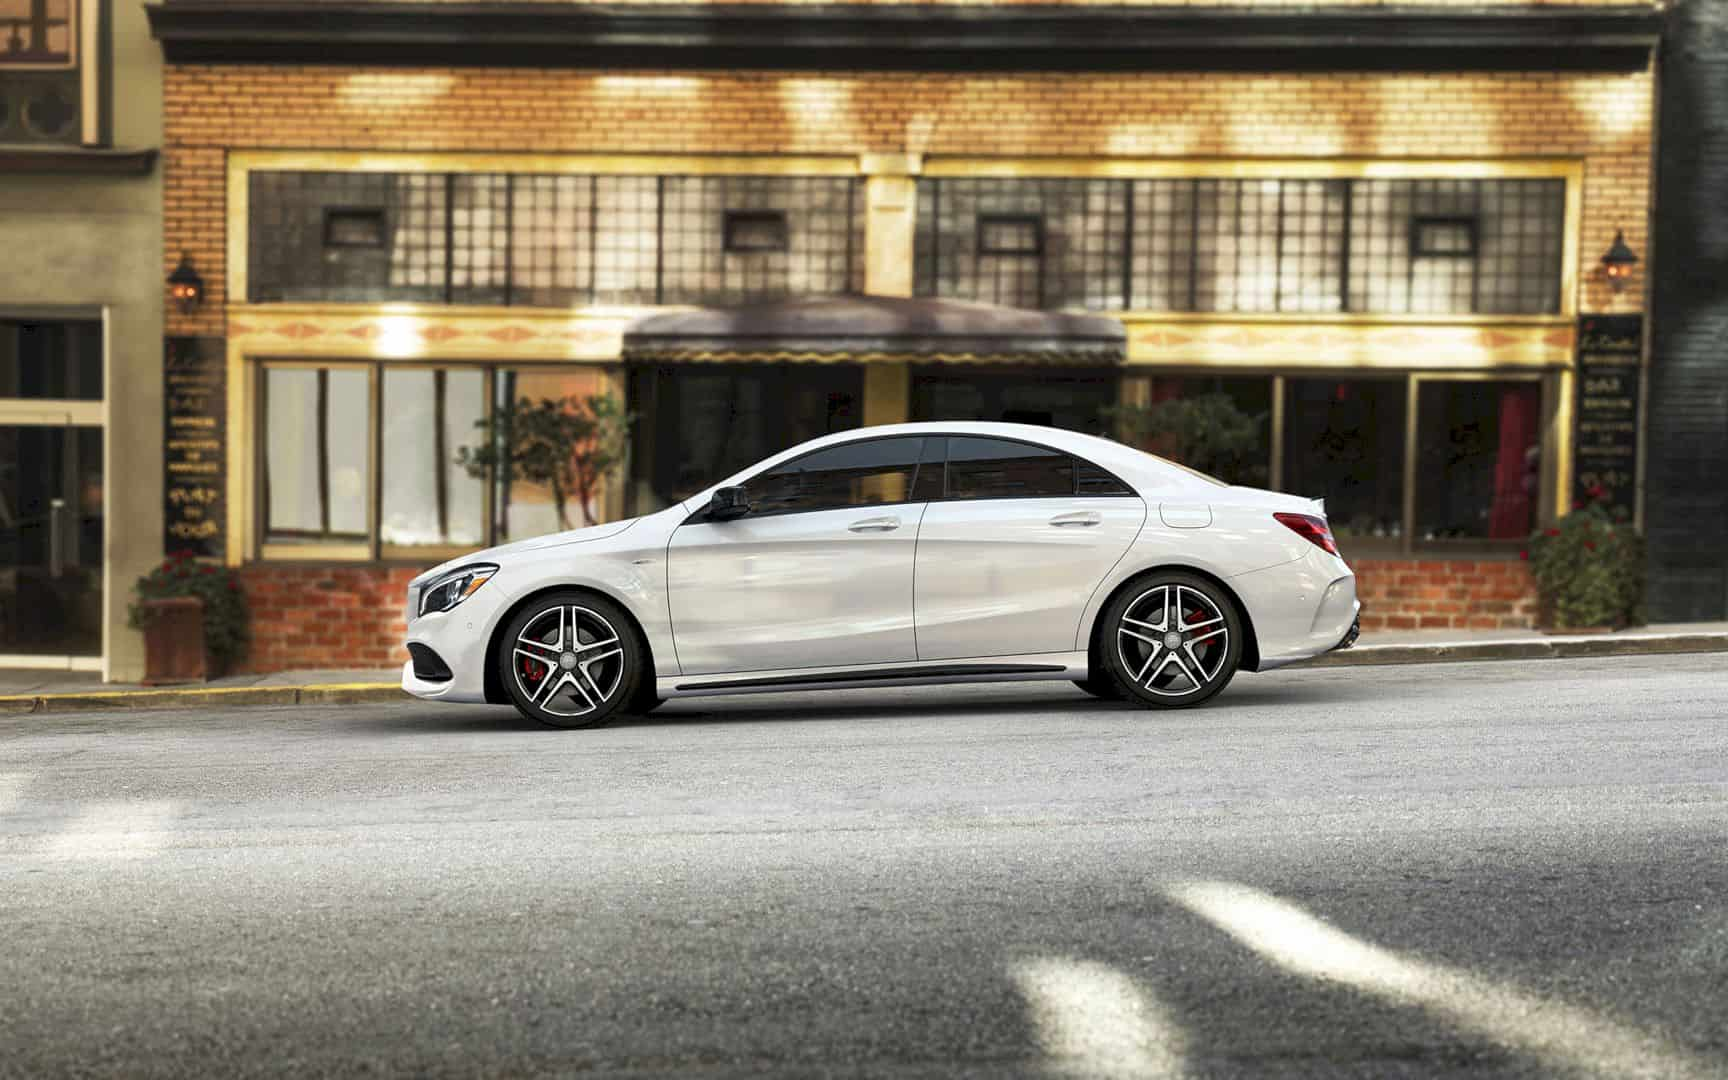 Mercedes-AMG CLA45: The Most Powerful CLA on Sale